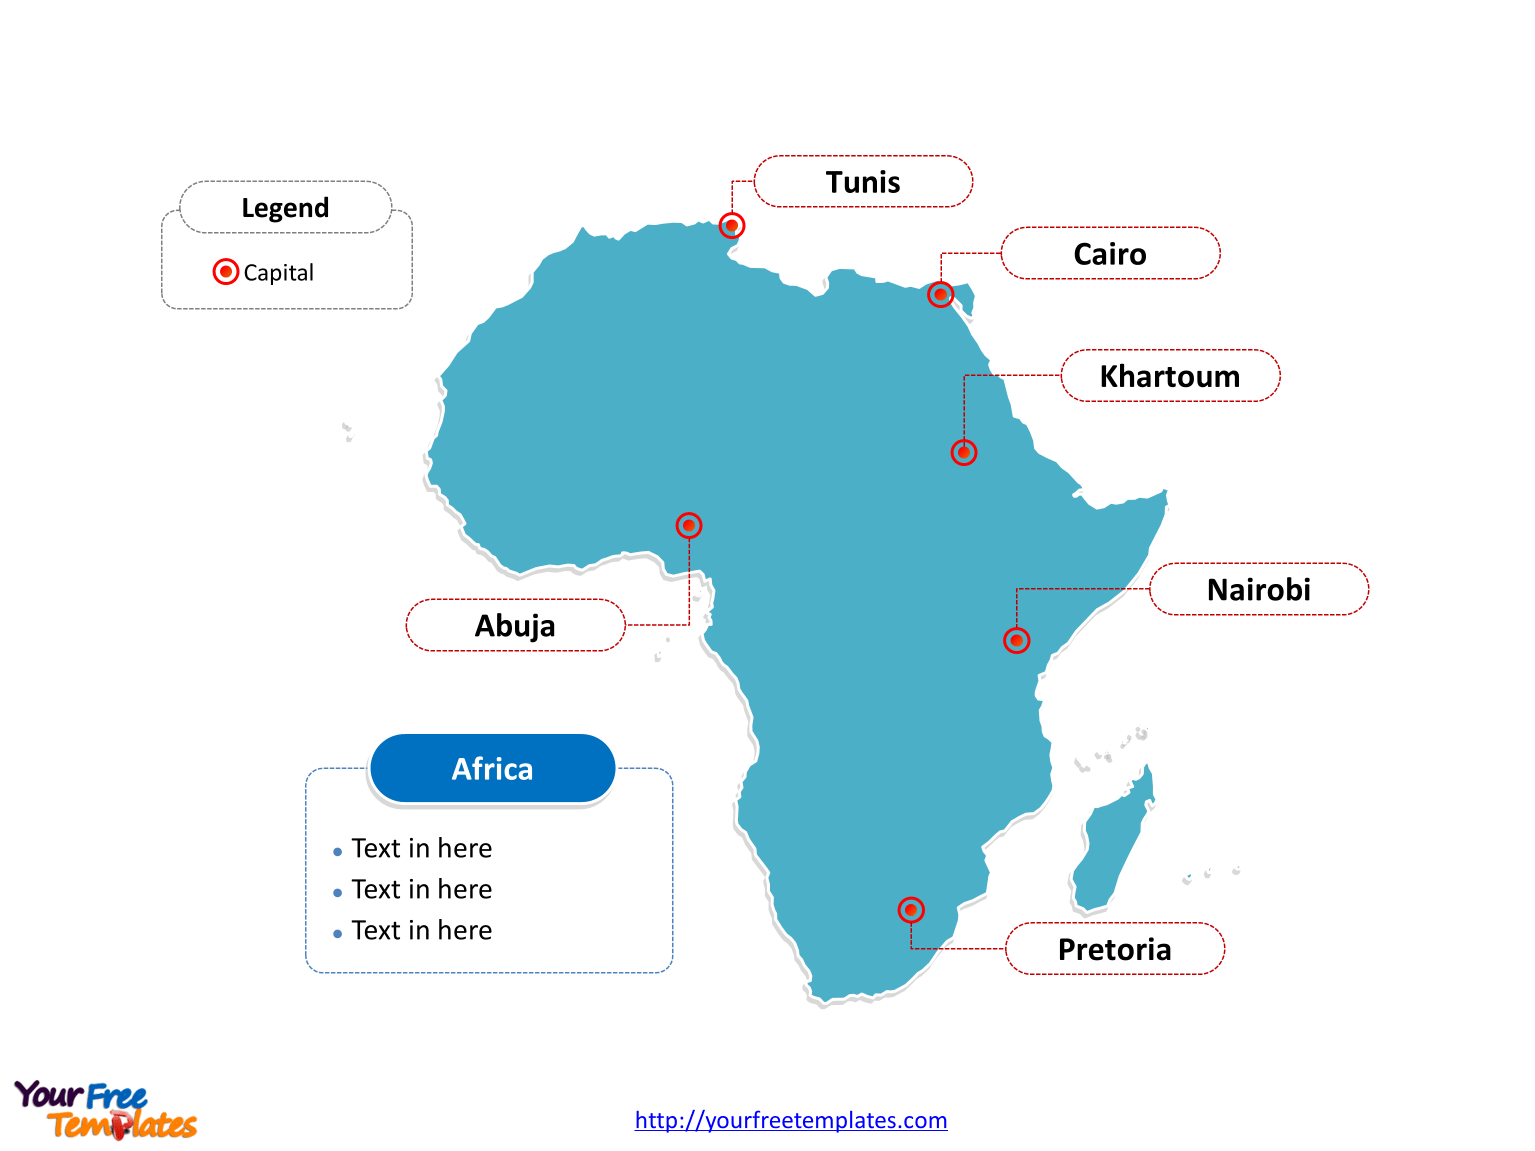 Africa Clipart Labelled Africa Labelled Transparent Free